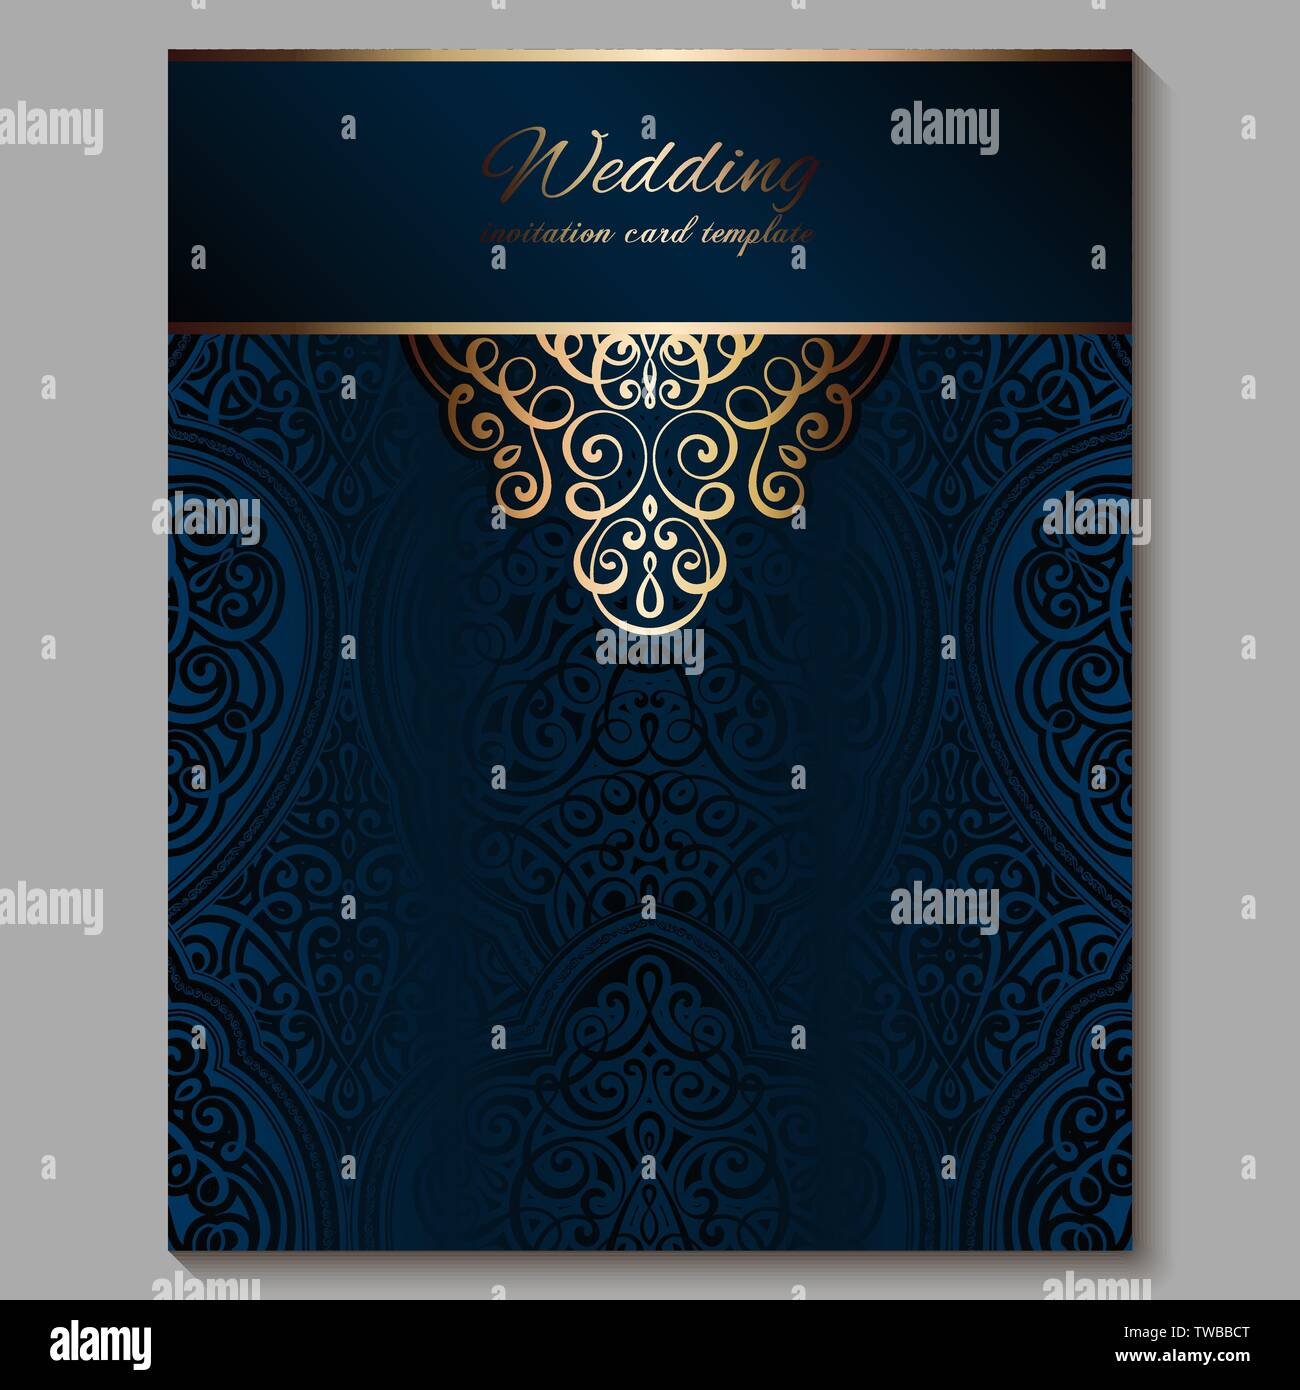 https www alamy com wedding invitation card with gold shiny eastern and baroque rich foliage royal blue ornate islamic background for your design islam arabic indian image256562008 html